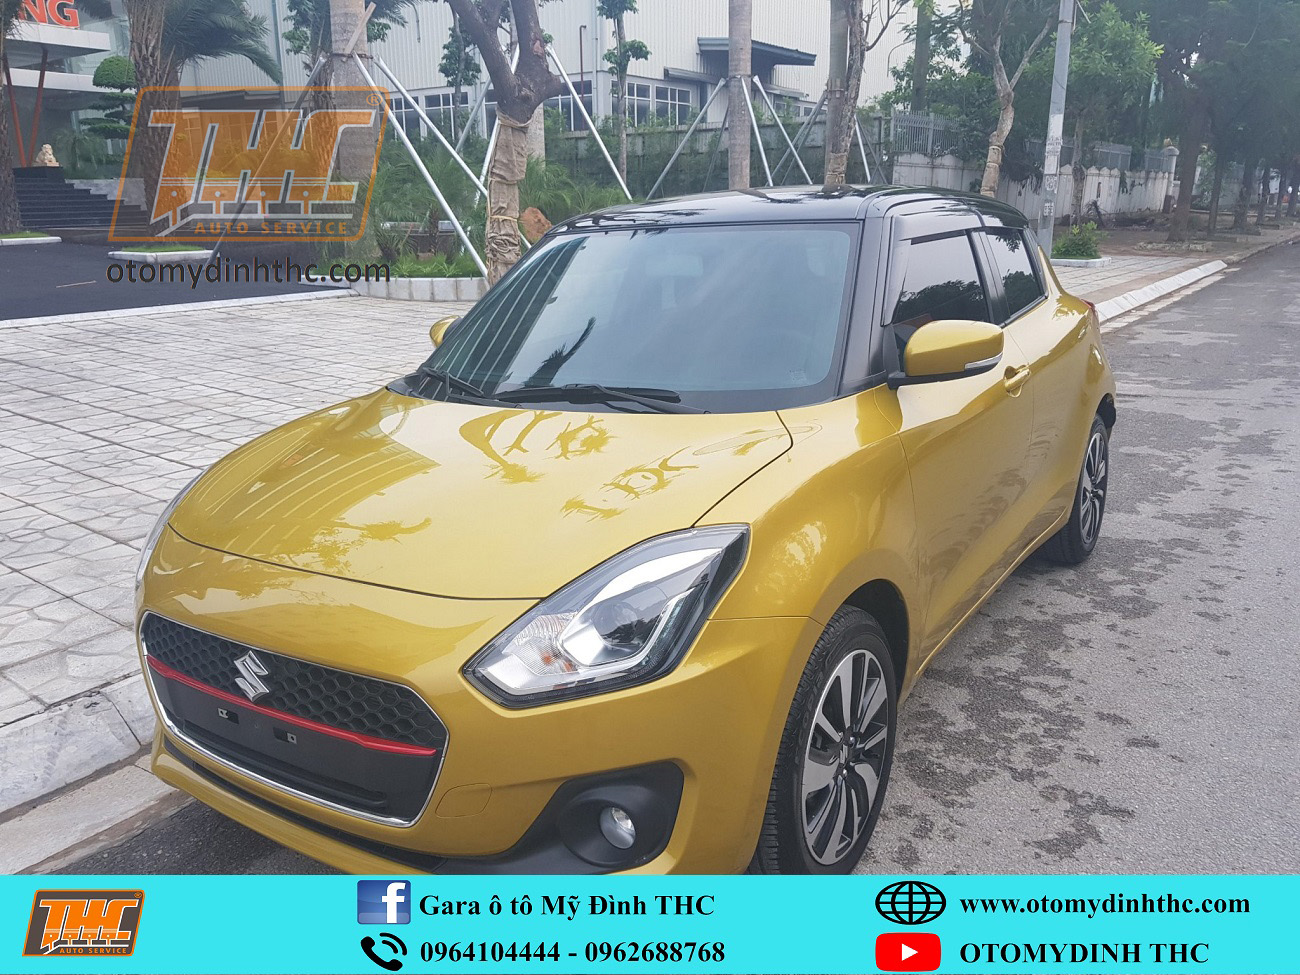 son-doi-mau-suzuki-swift-6